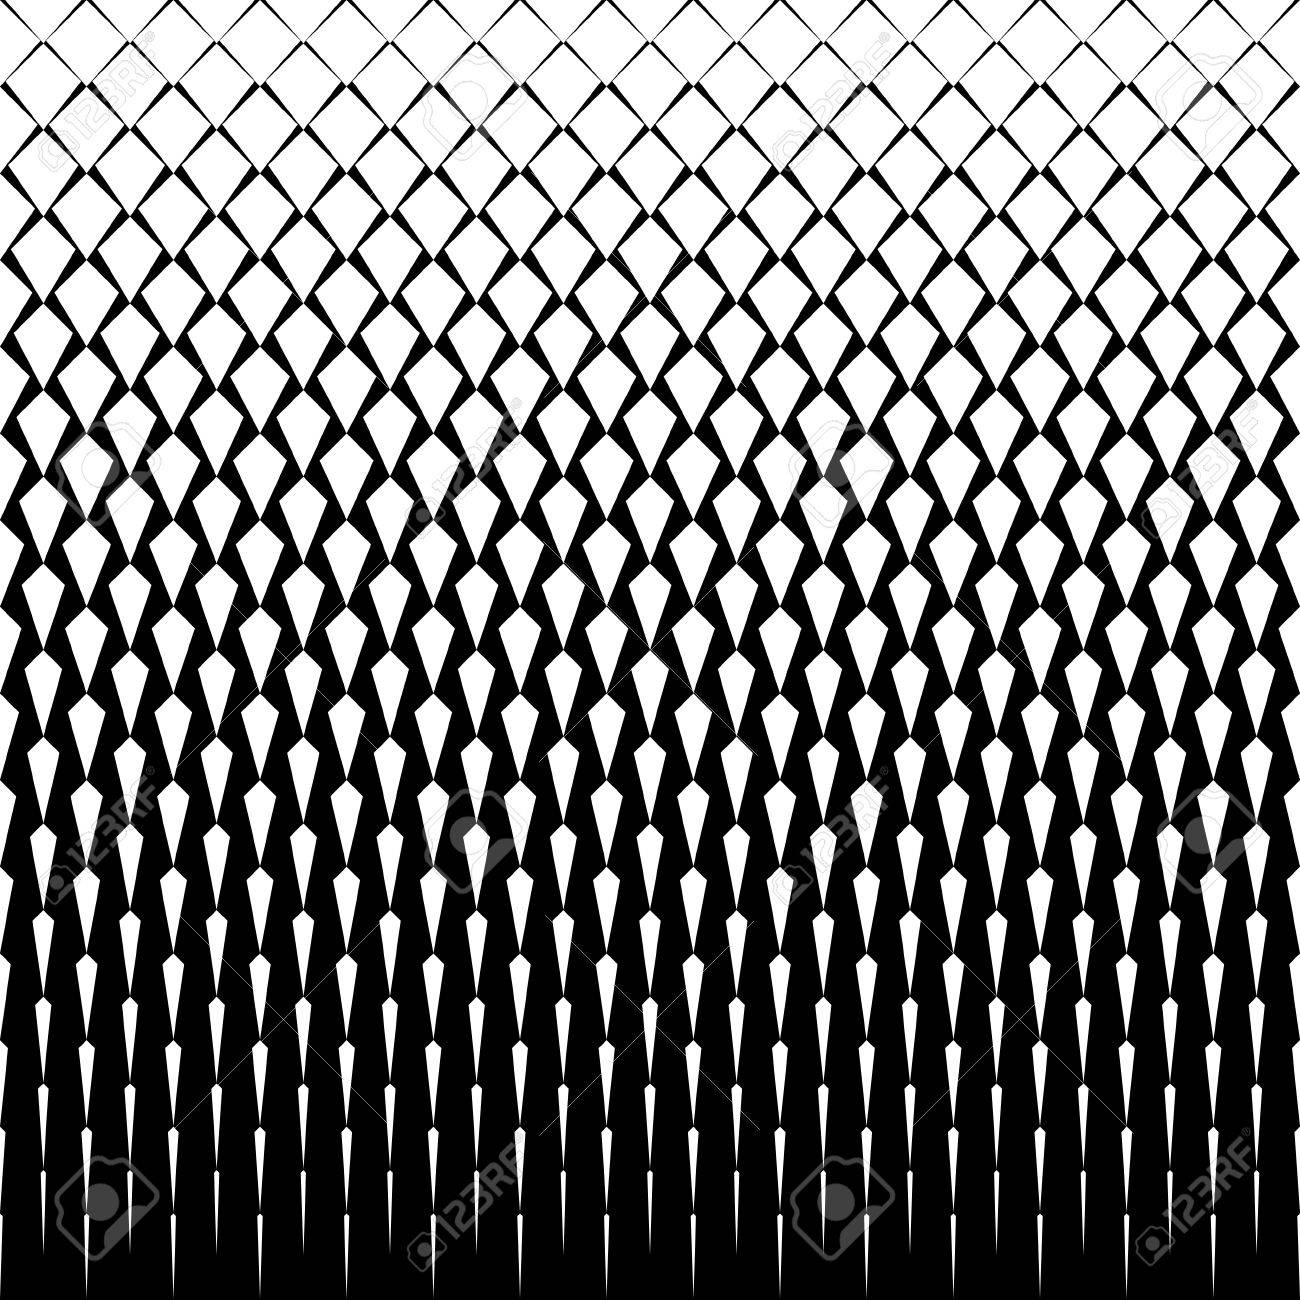 Vector art deco tiles pattern abstract gradient op art seamless vector art deco tiles pattern abstract gradient op art seamless monochrome background with rhombus voltagebd Images